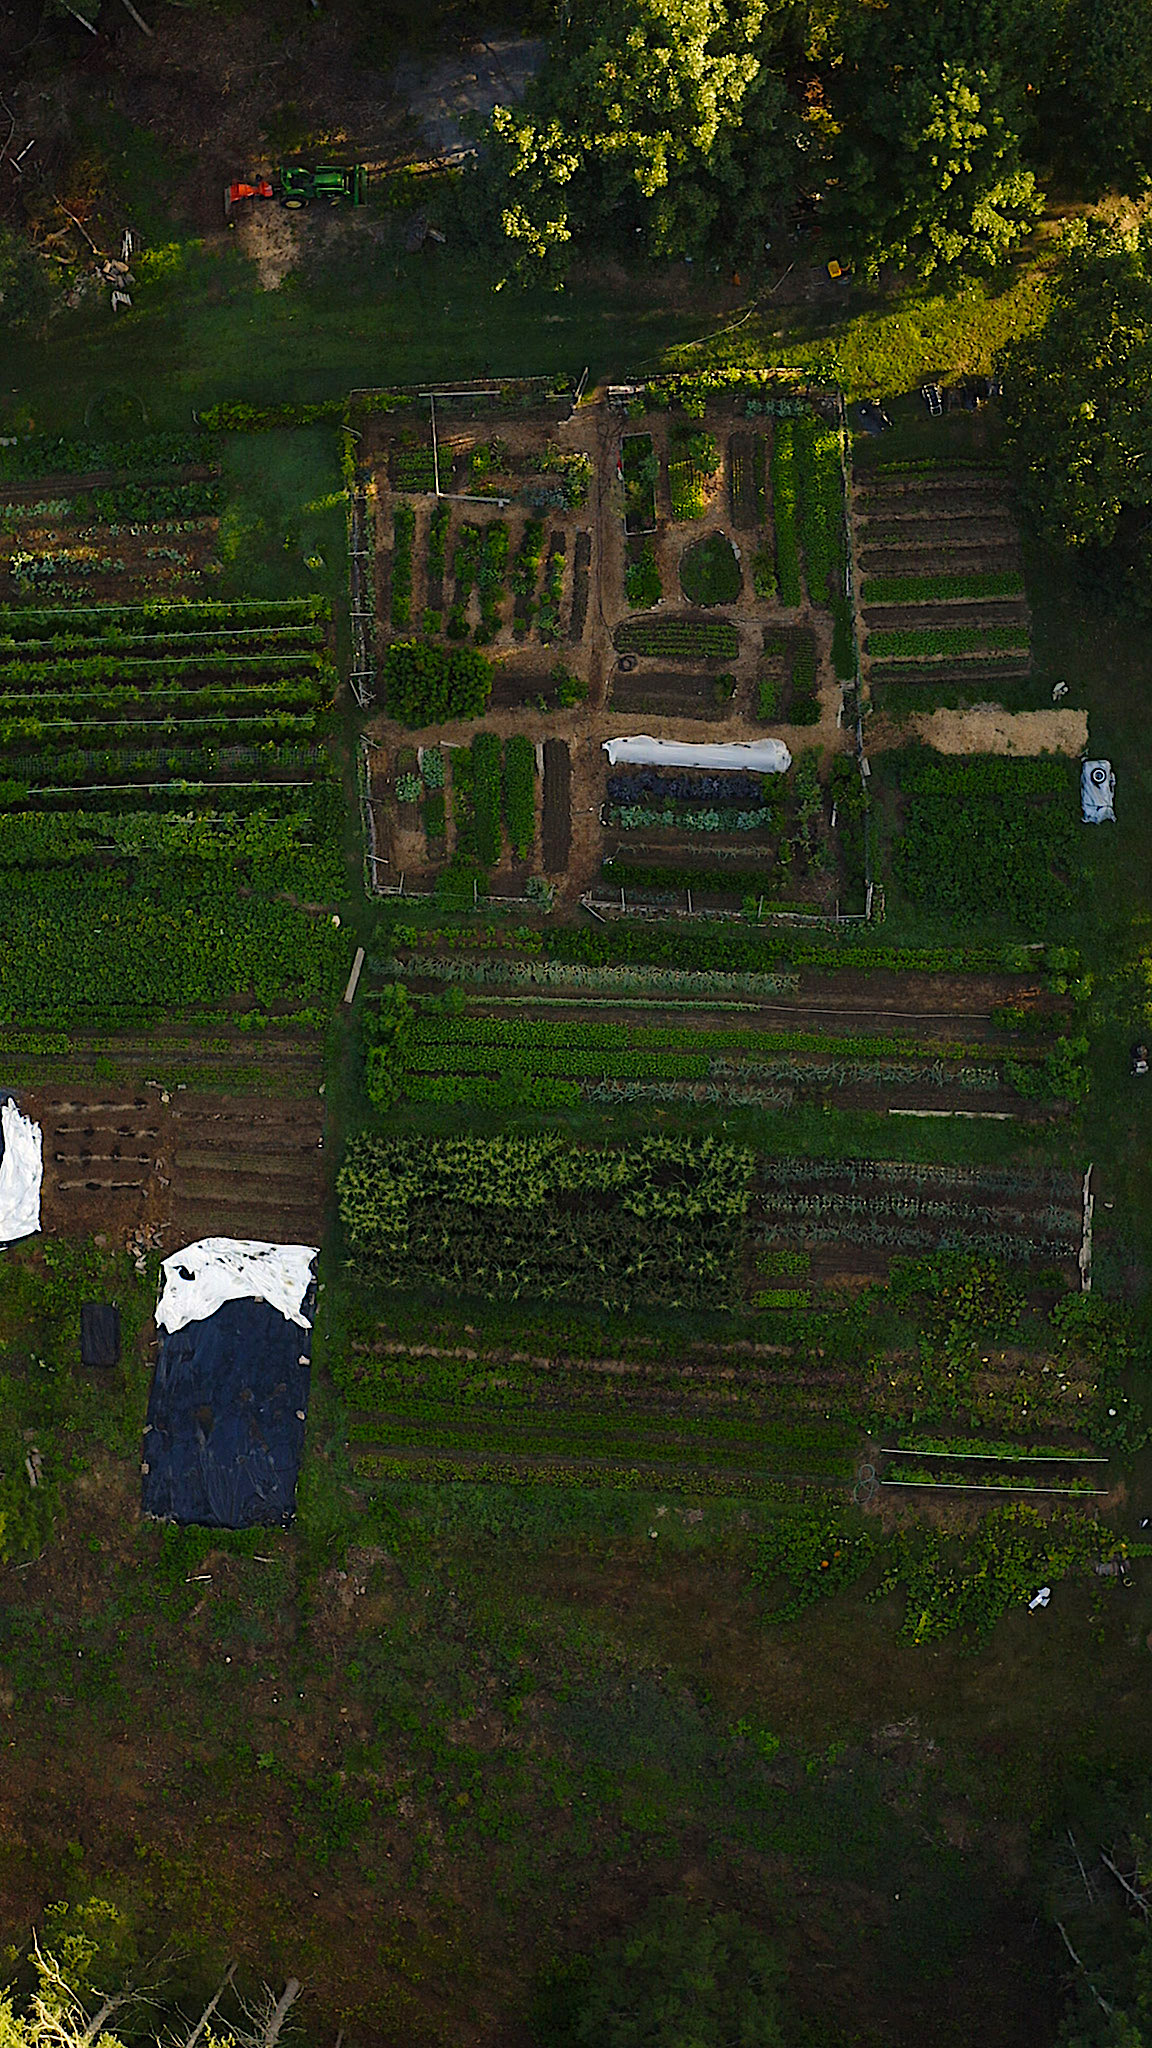 Veggies to Table view from above